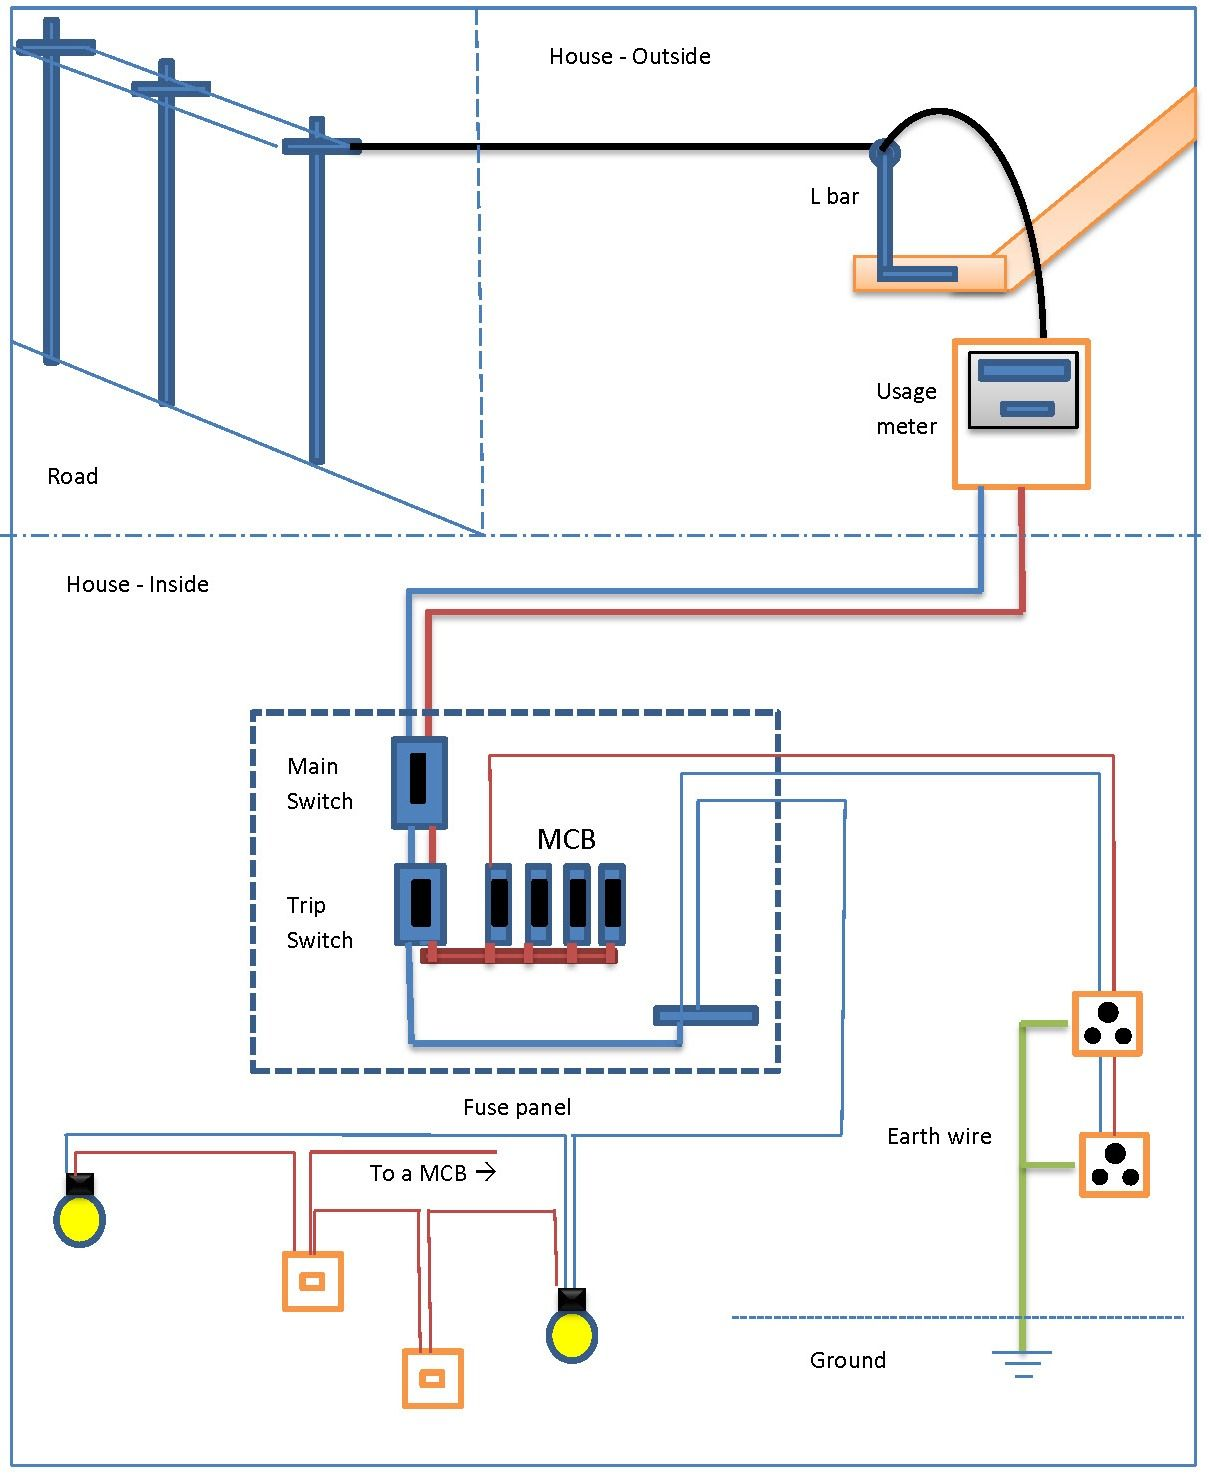 images of house wiring circuit diagram wire diagram images info in 2019 house wiring electrical diagram home electrical wiring [ 1209 x 1480 Pixel ]